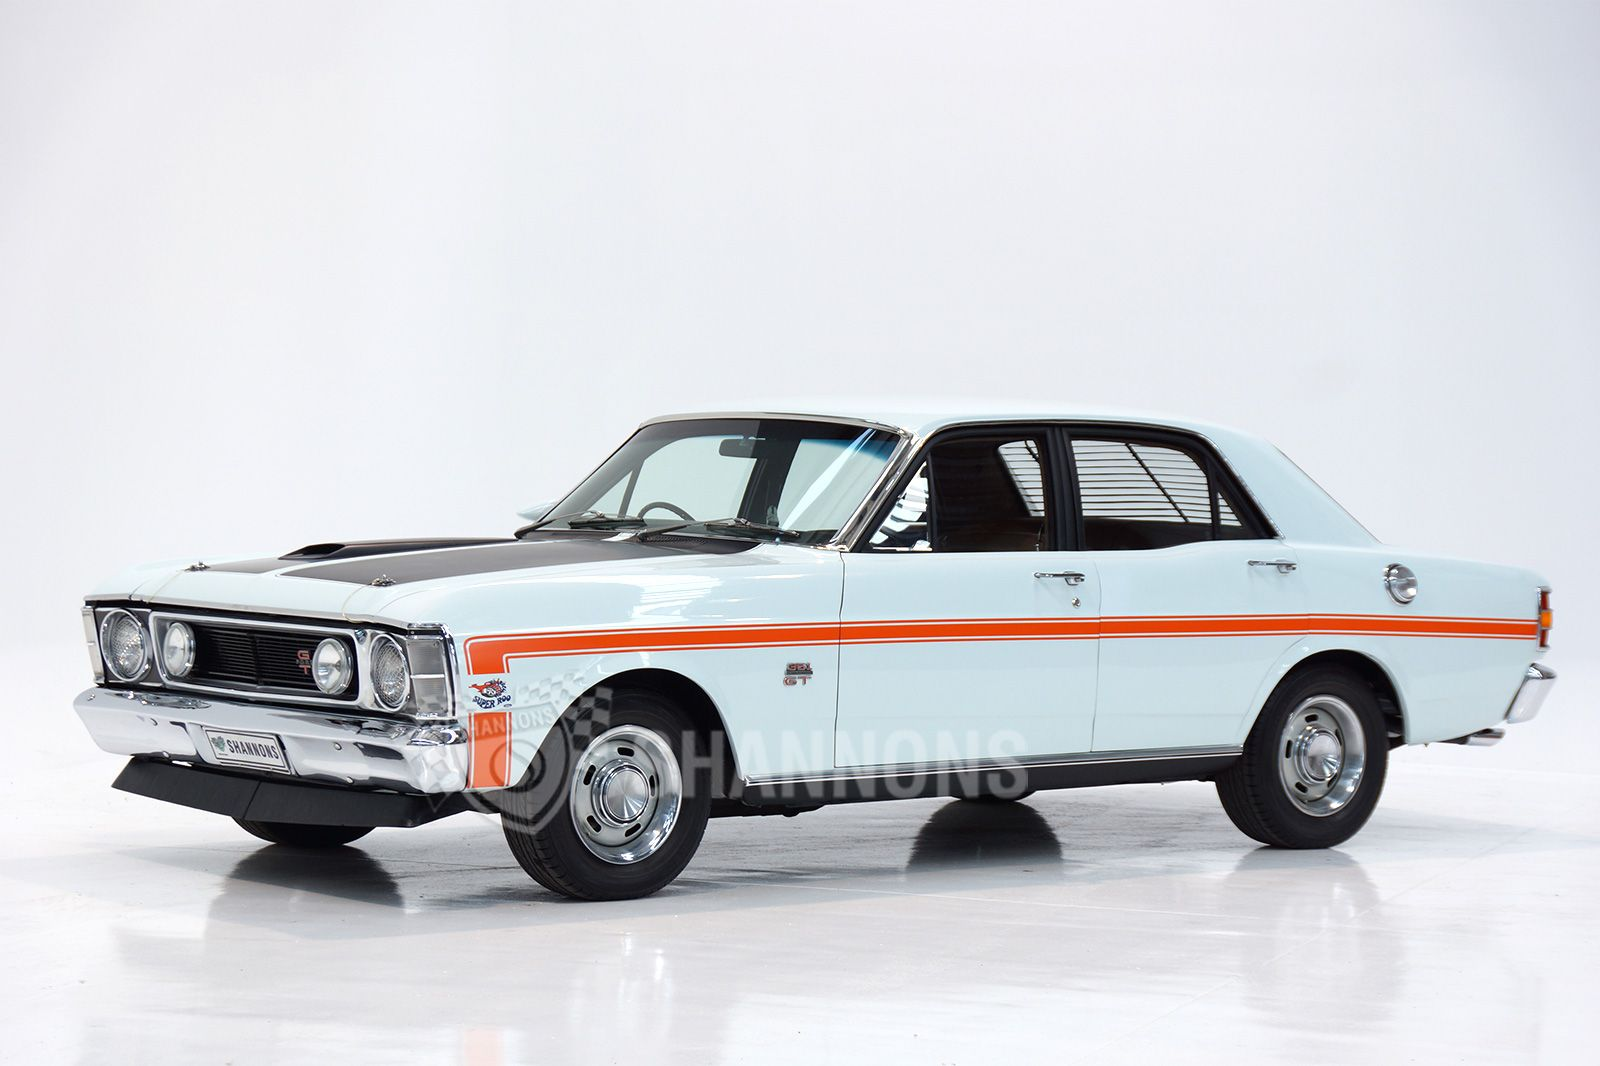 1970 Ford XW Falcon GTHO Phase II